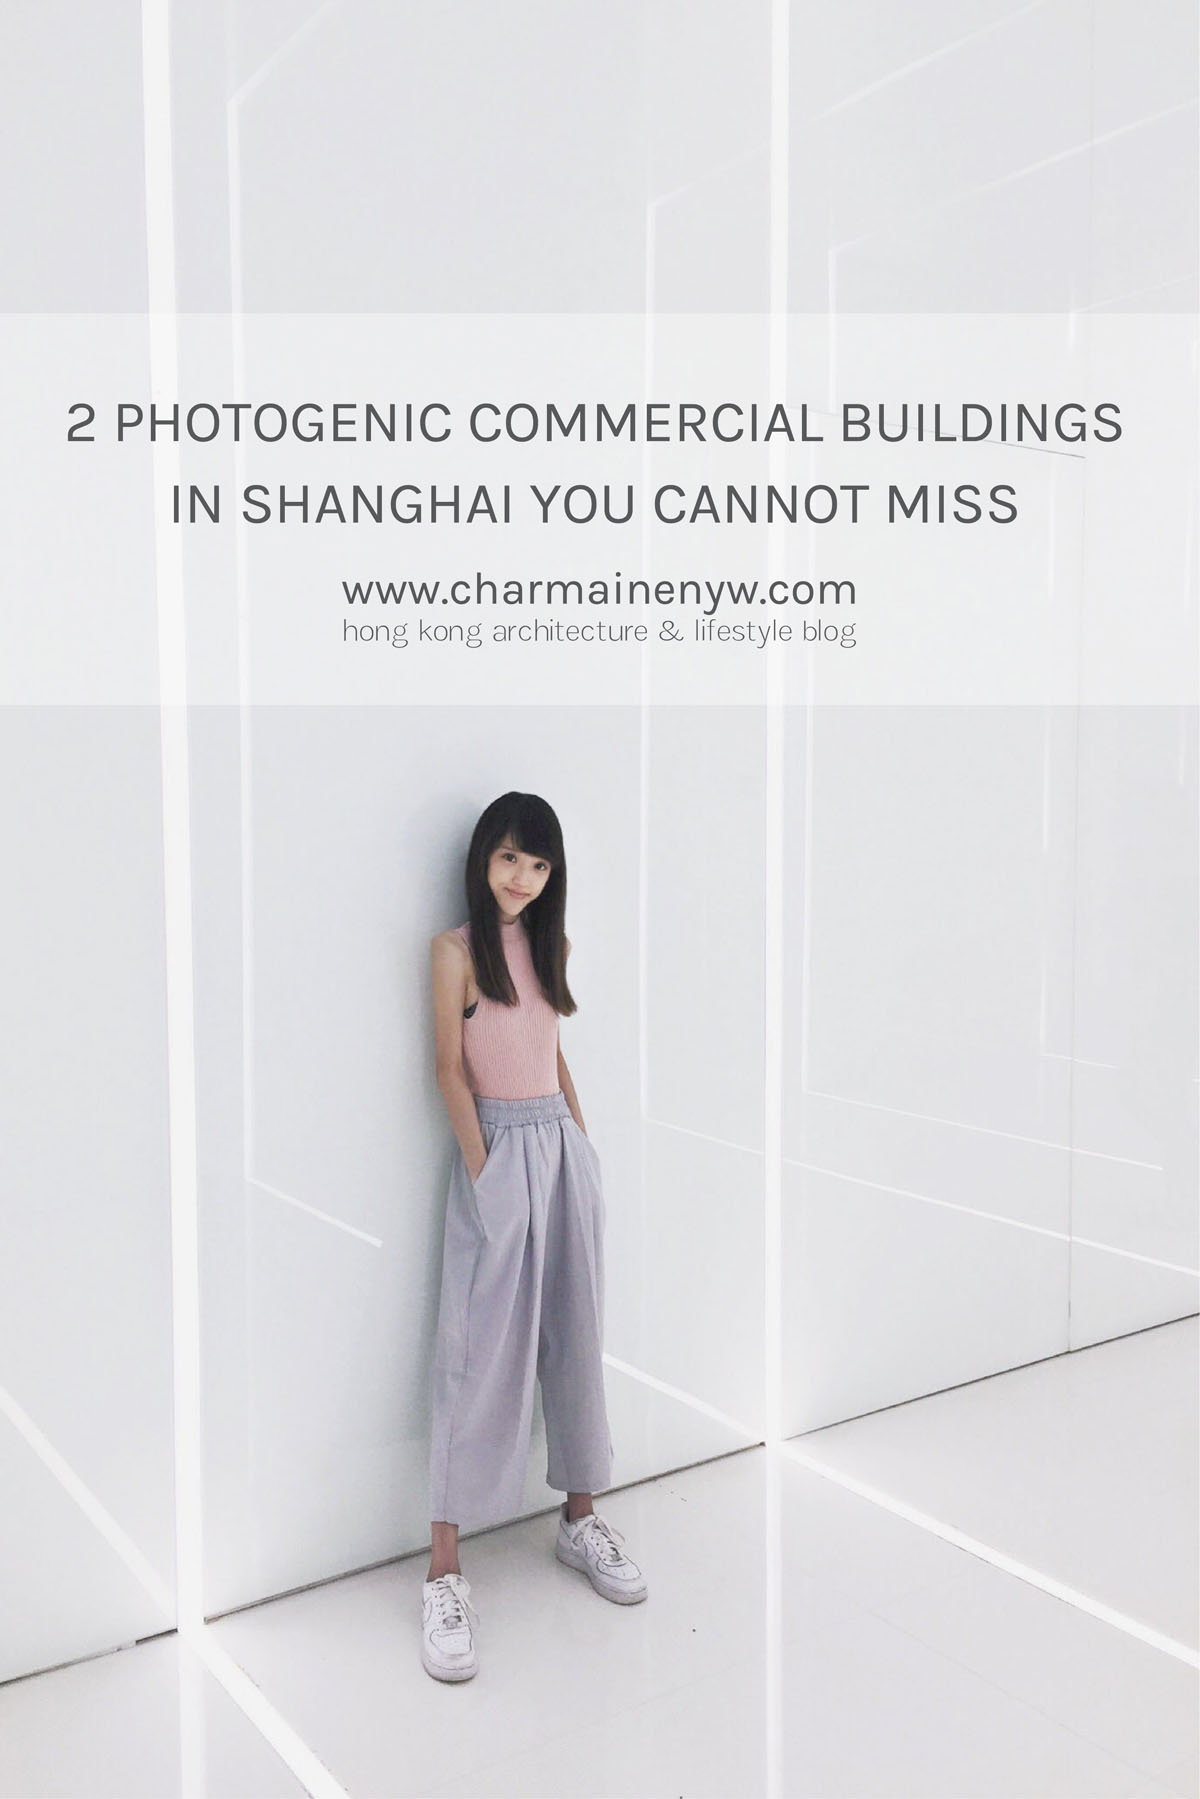 2 Photogenic Commercial Buildings in Shanghai - SOHO Fuxing Plaza